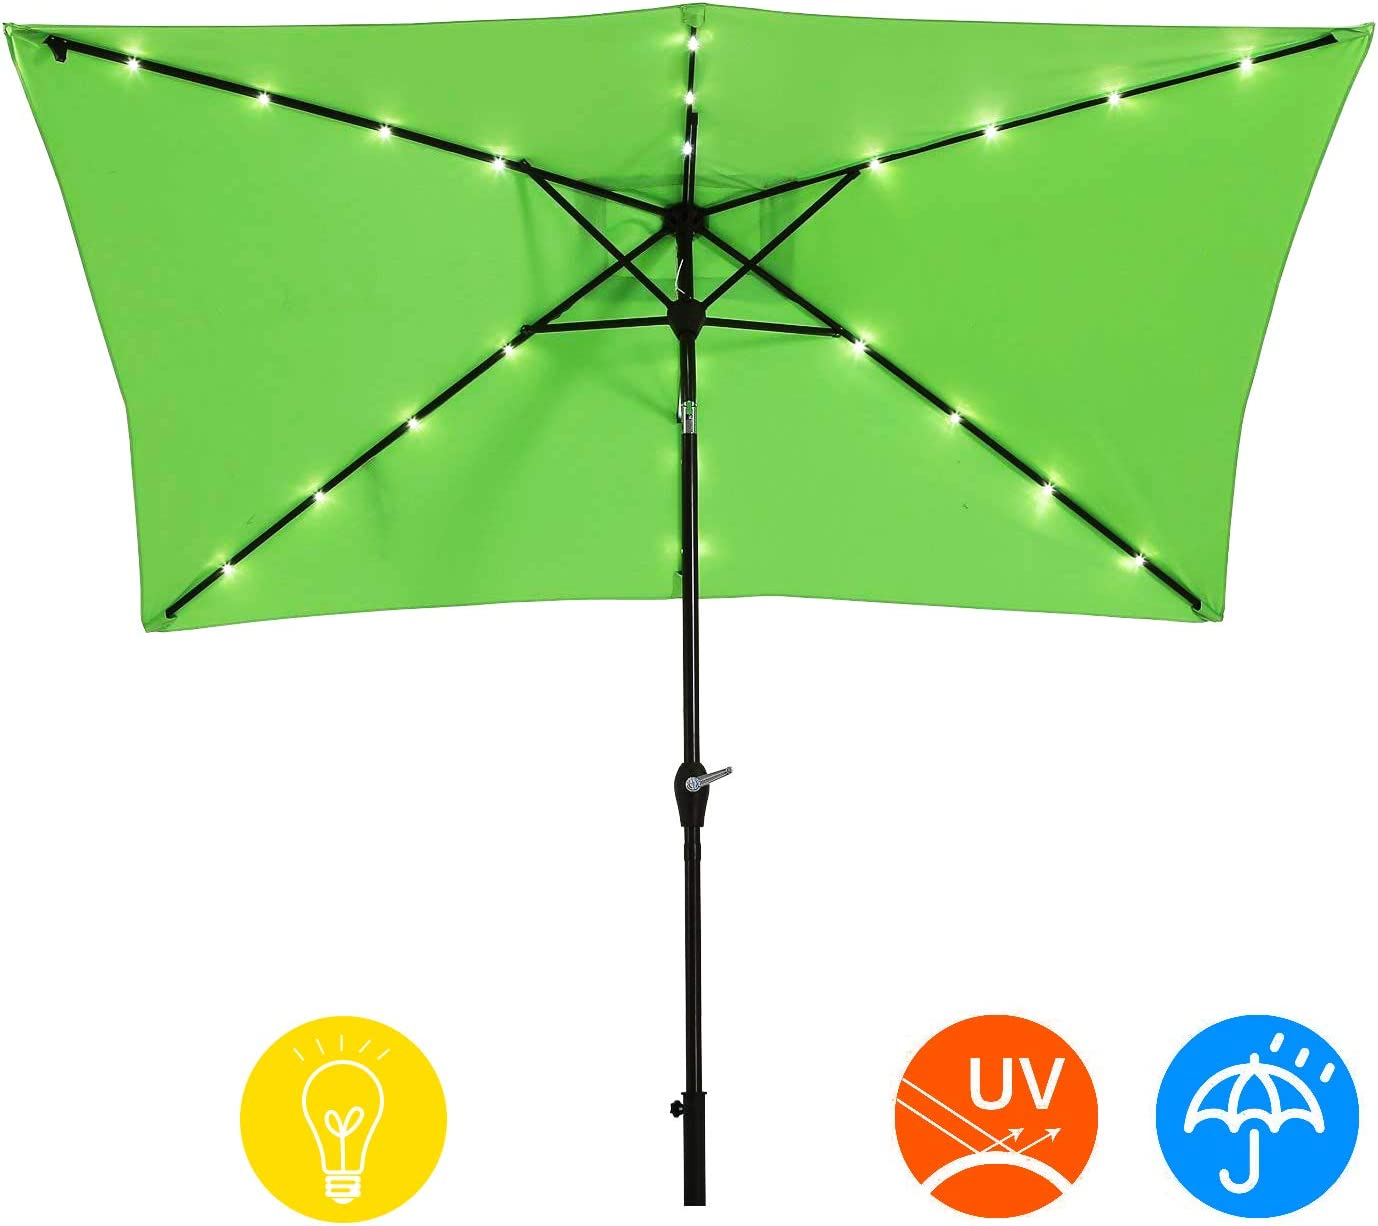 AI-LIN 10 x 6.5ft LED Lighted Patio Market Umbrella Outdoor Solar Powered Table Umbrella, 6 Ribs Light Green